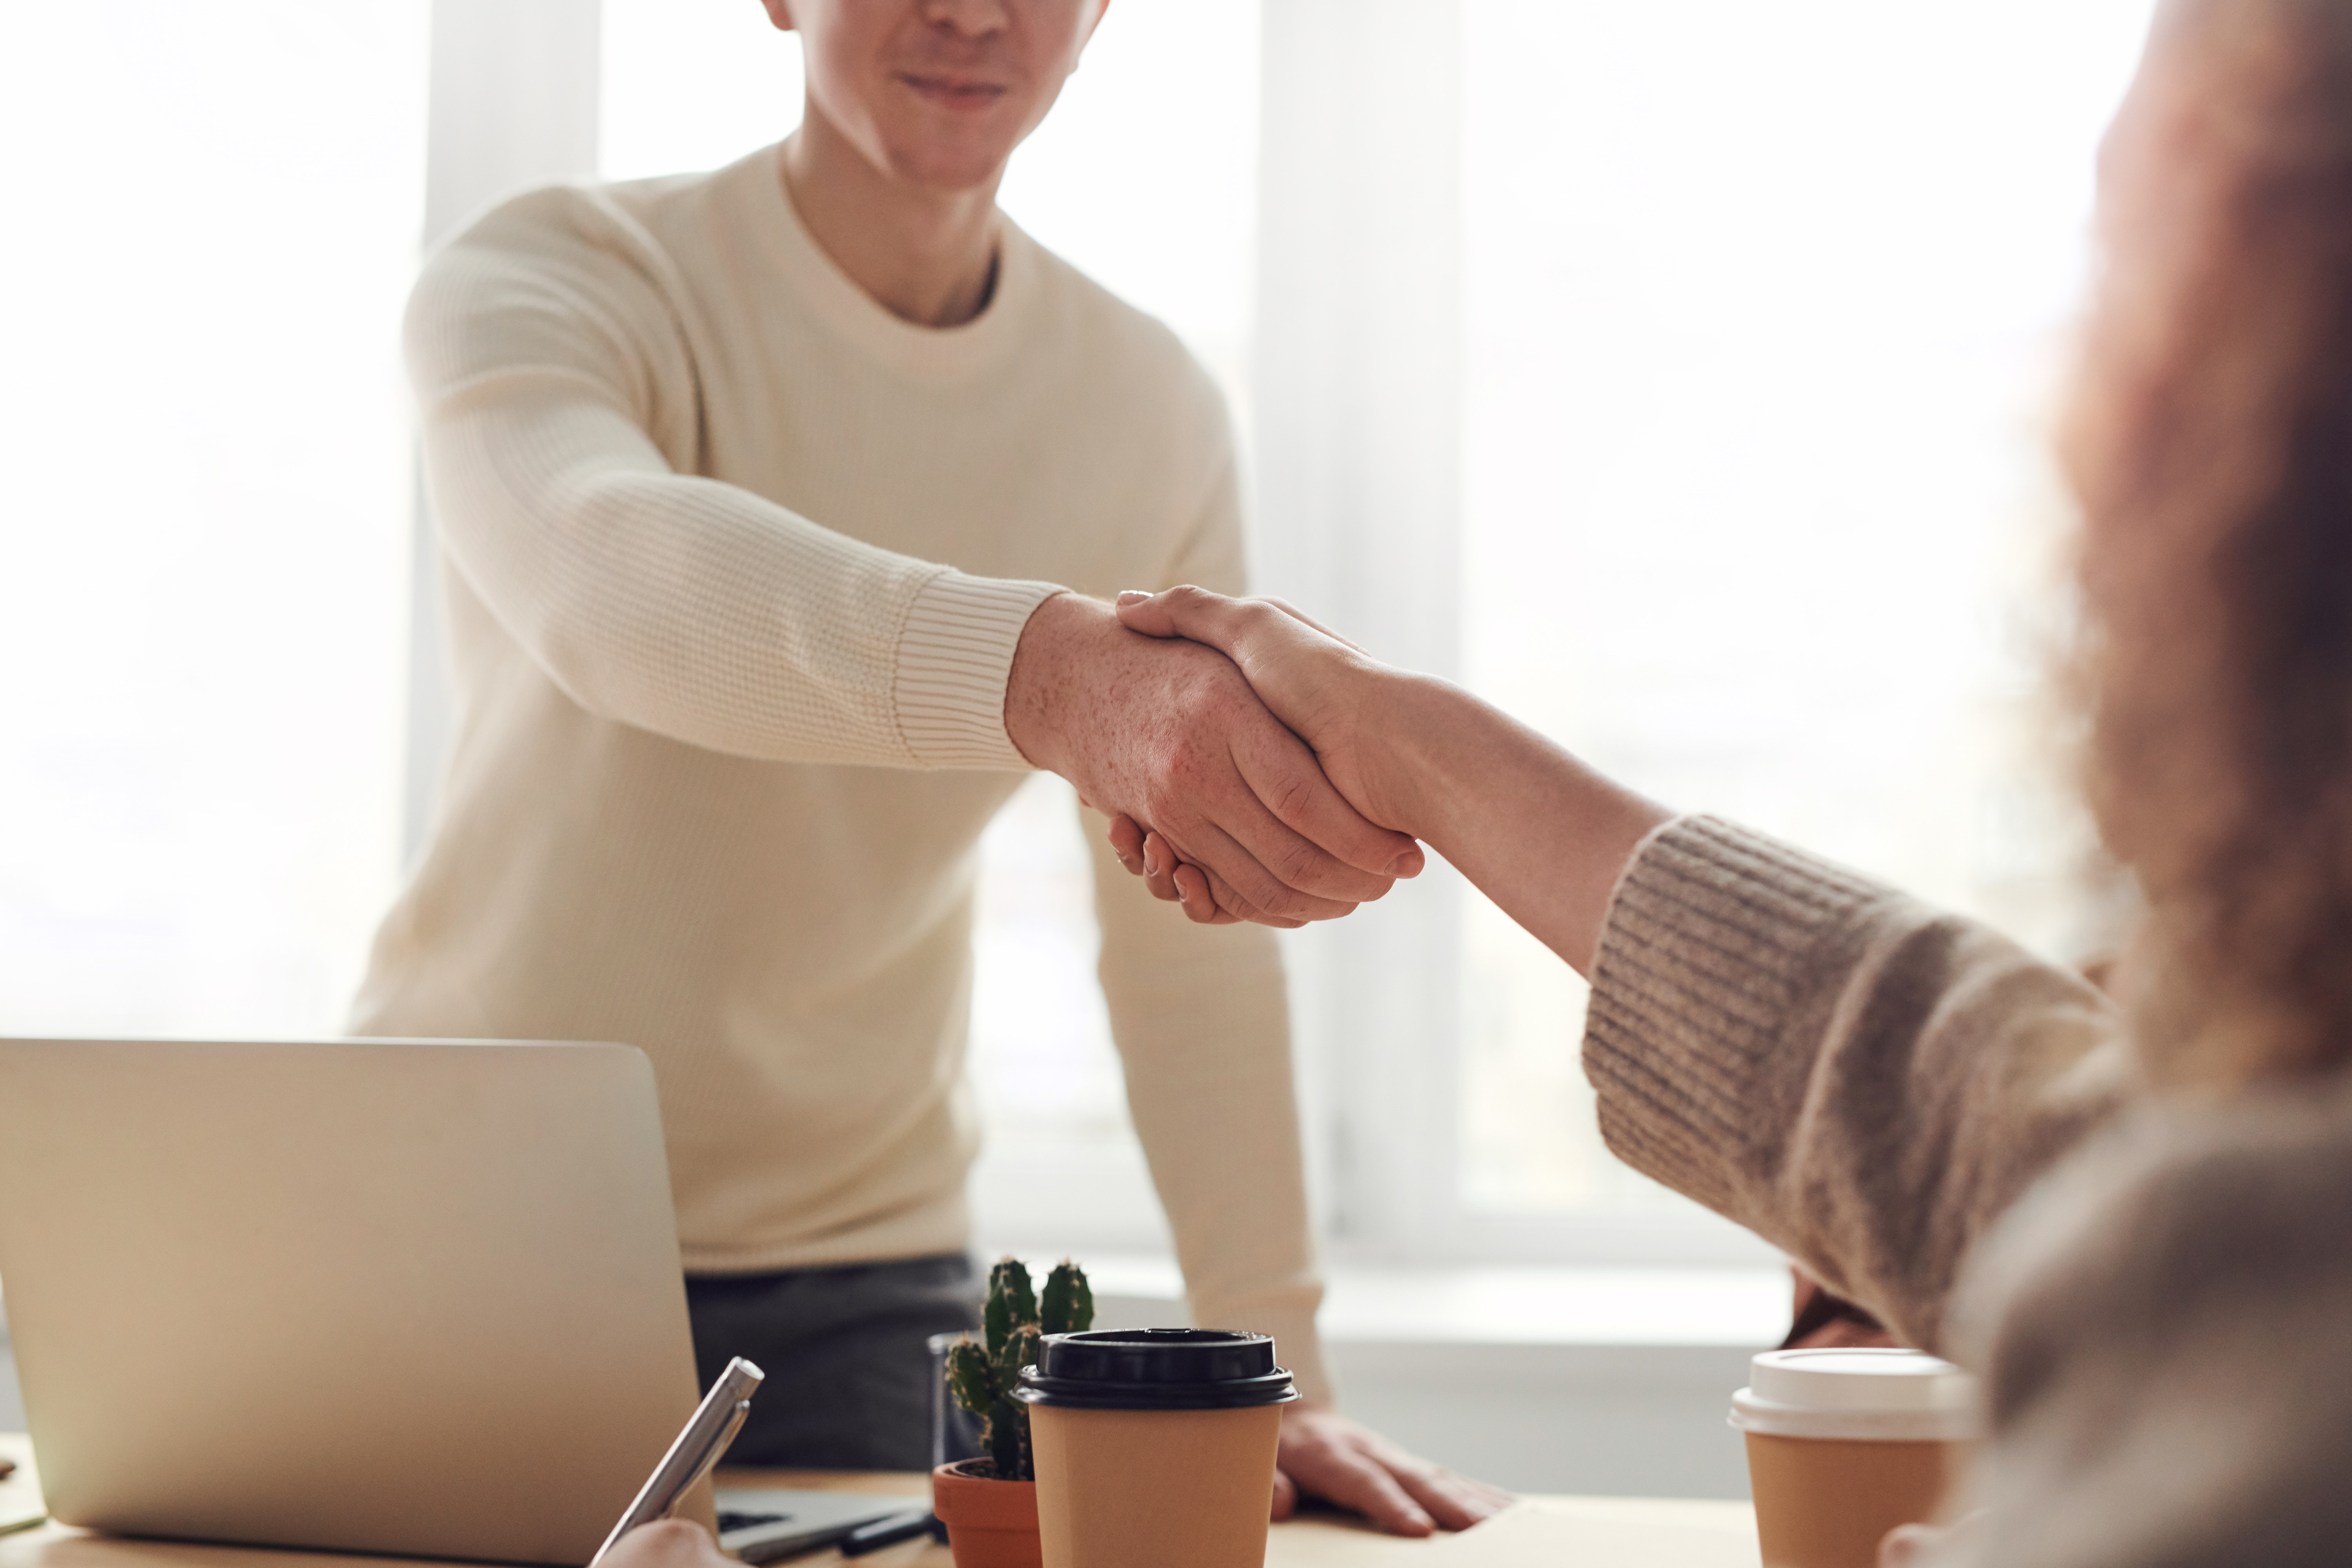 How to build and maintain client relationships